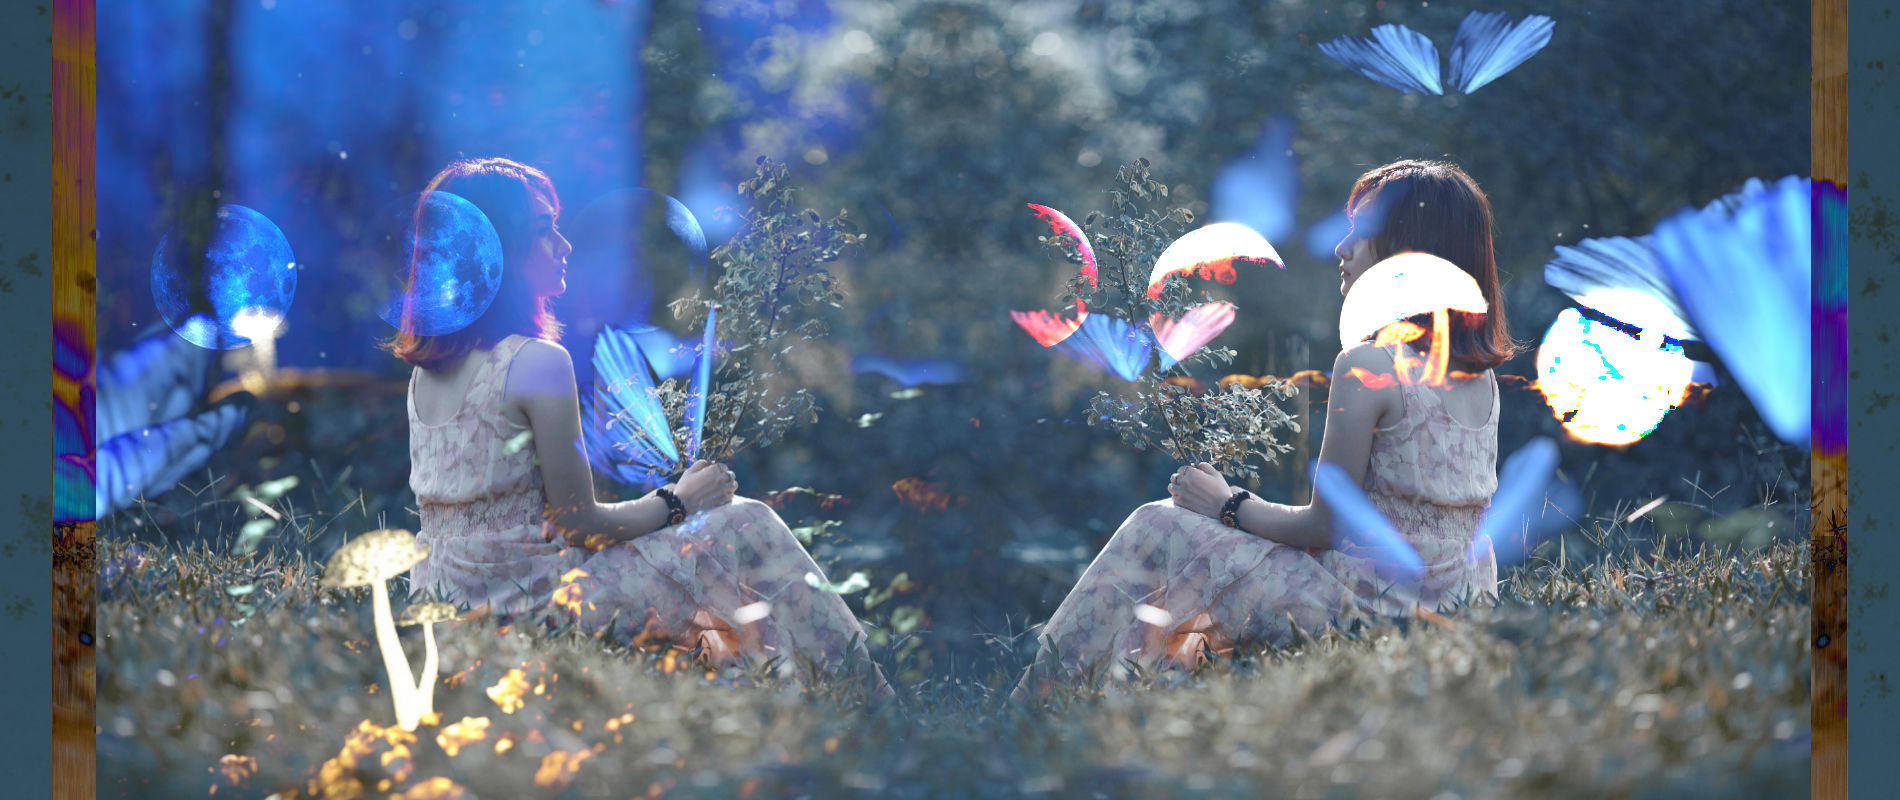 Forest with Two Women, Full Moons and Blue Butterflies exploring Plant Medicine and Intuition